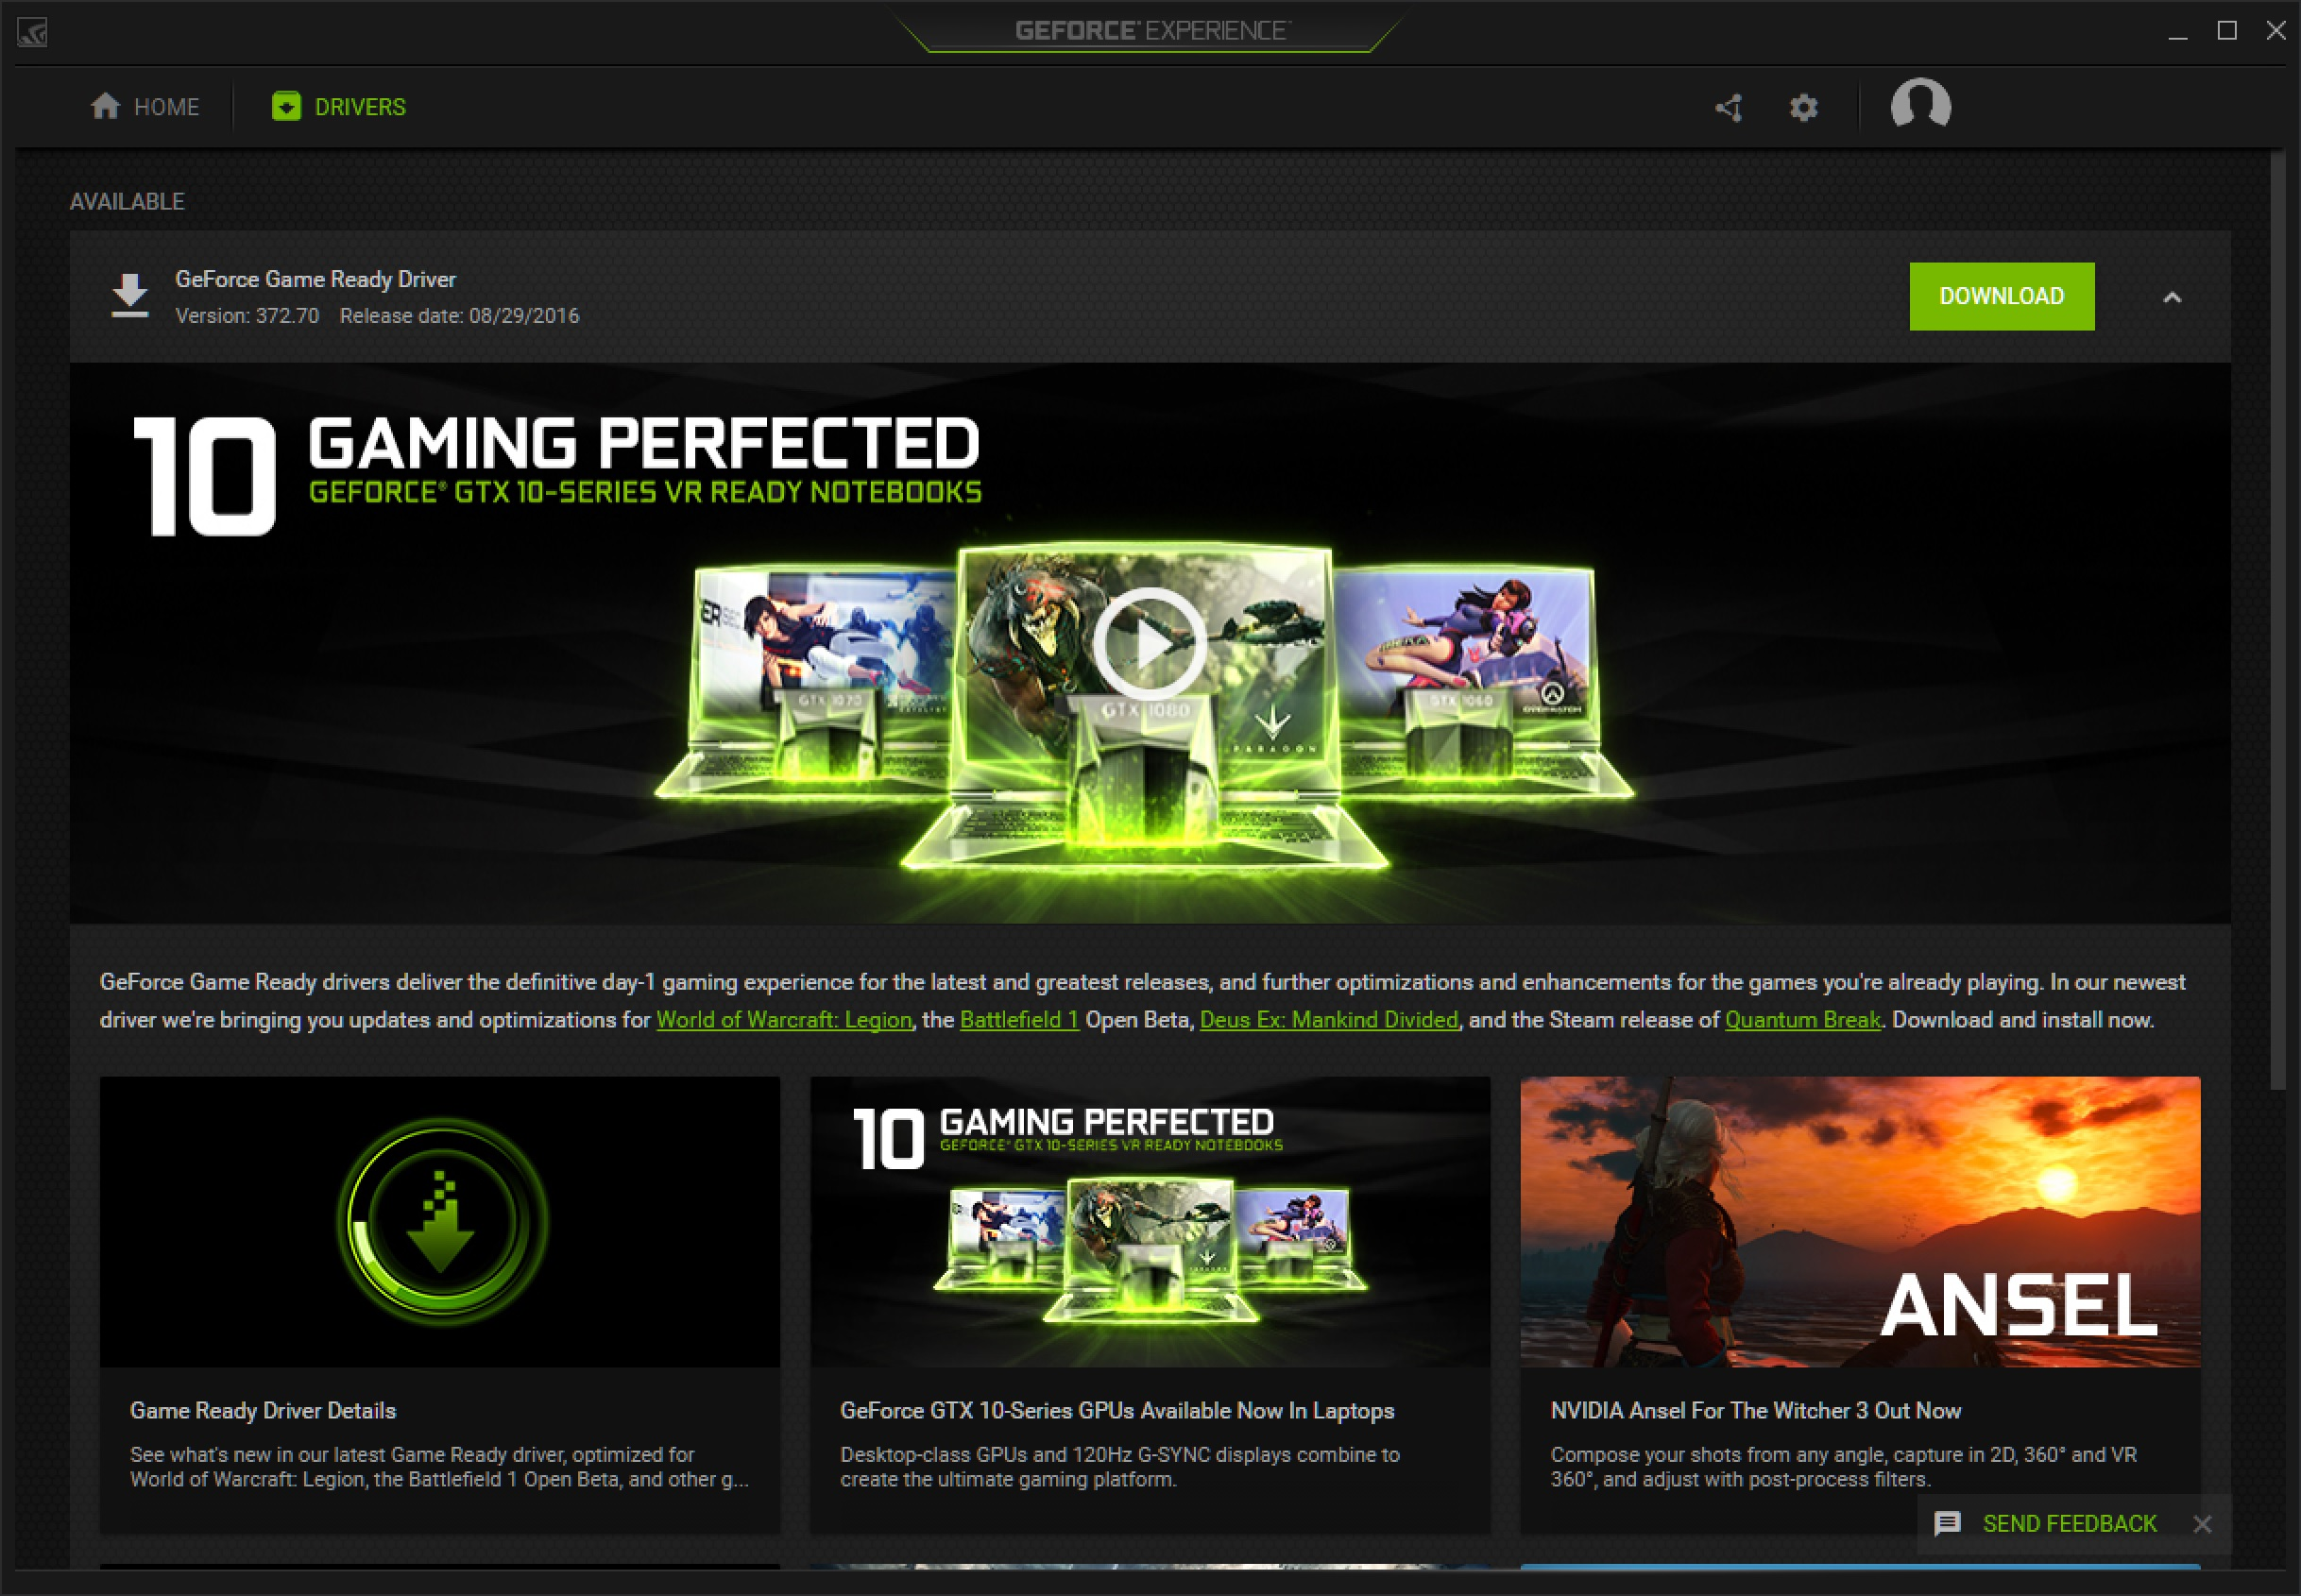 NVIDIA Updates to GeForce Expereince 3 0 - New UI and Features | NeoGAF